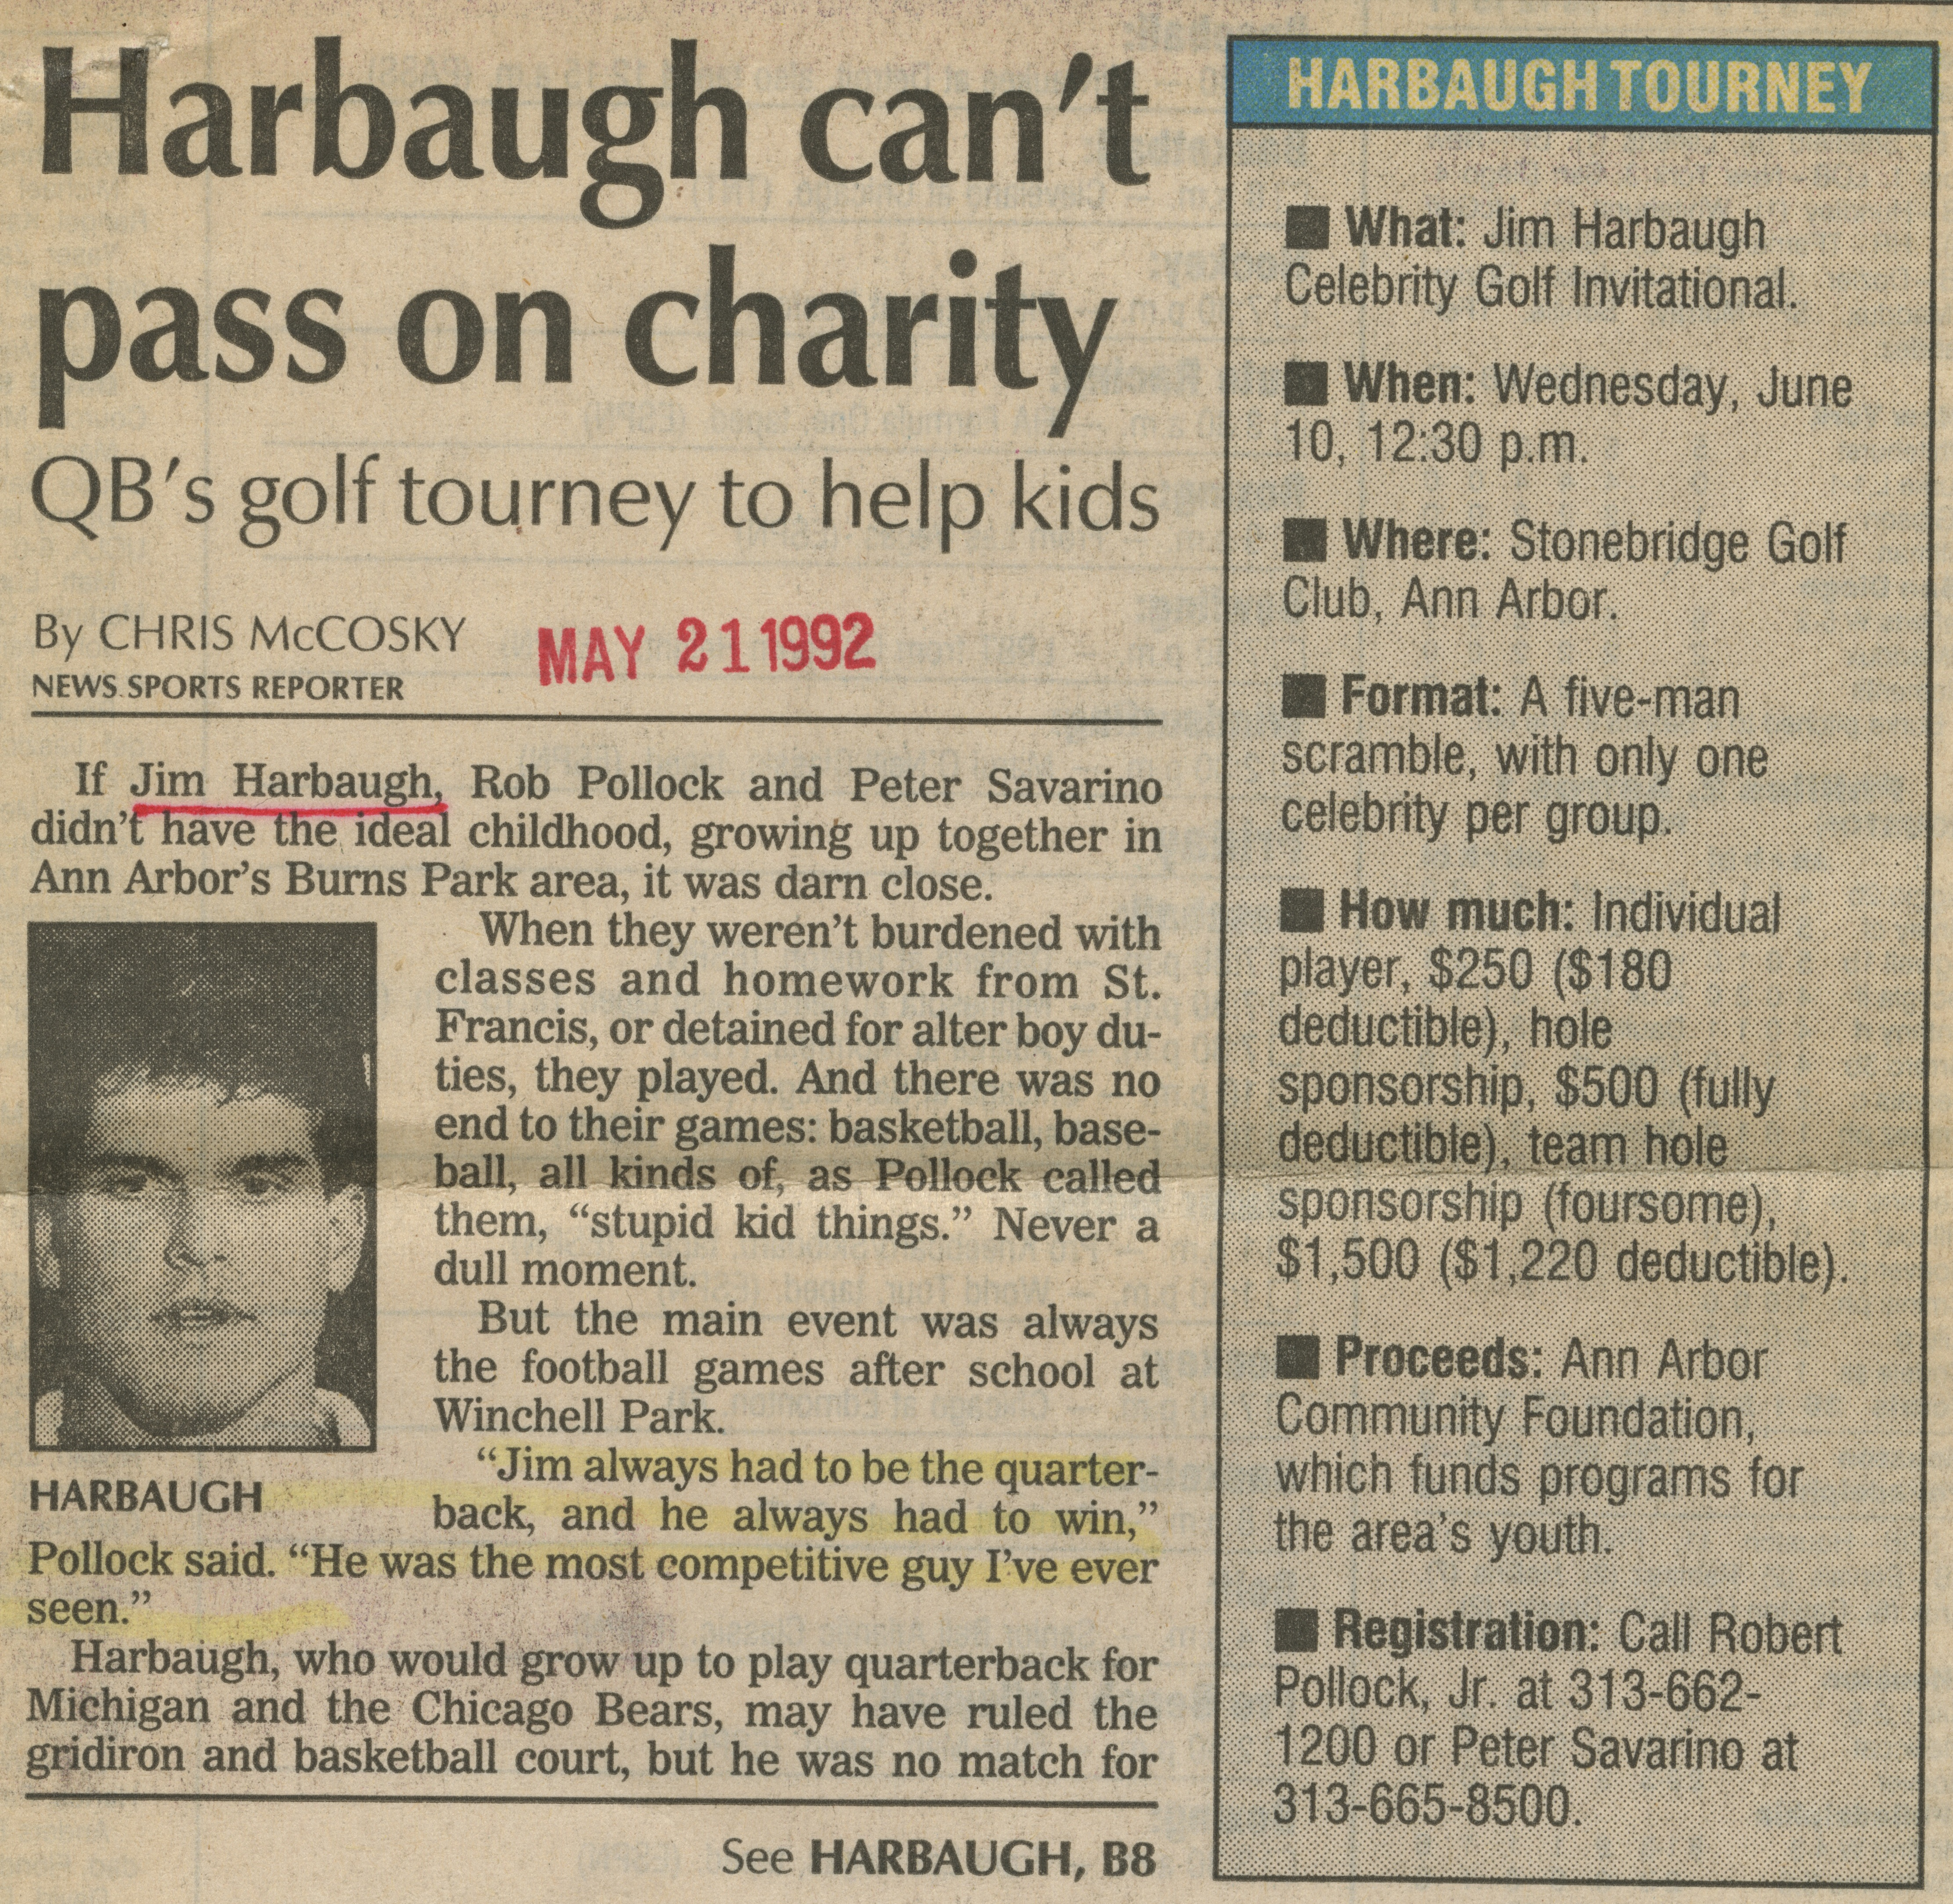 Harbaugh can't pass on charity image